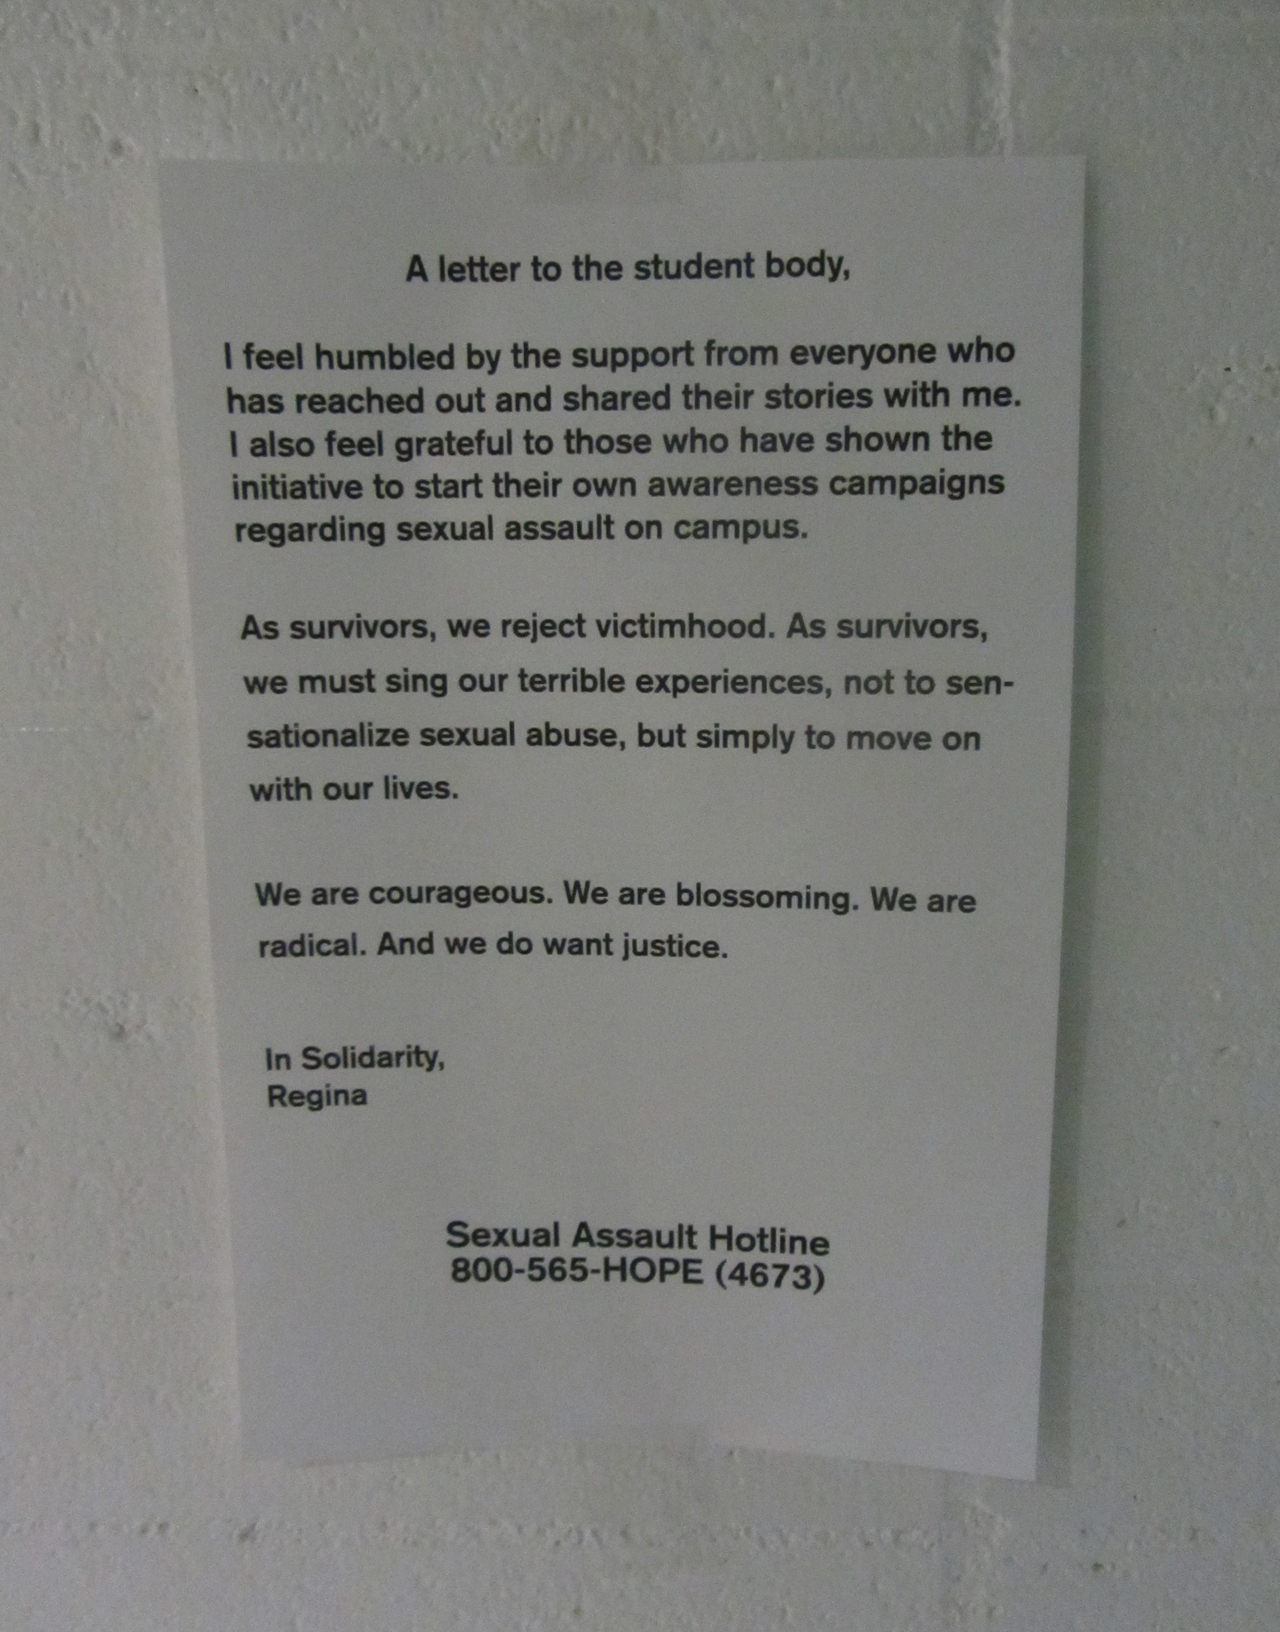 Letter posted by the Title IX complainant at CalArts (click to enlarge)